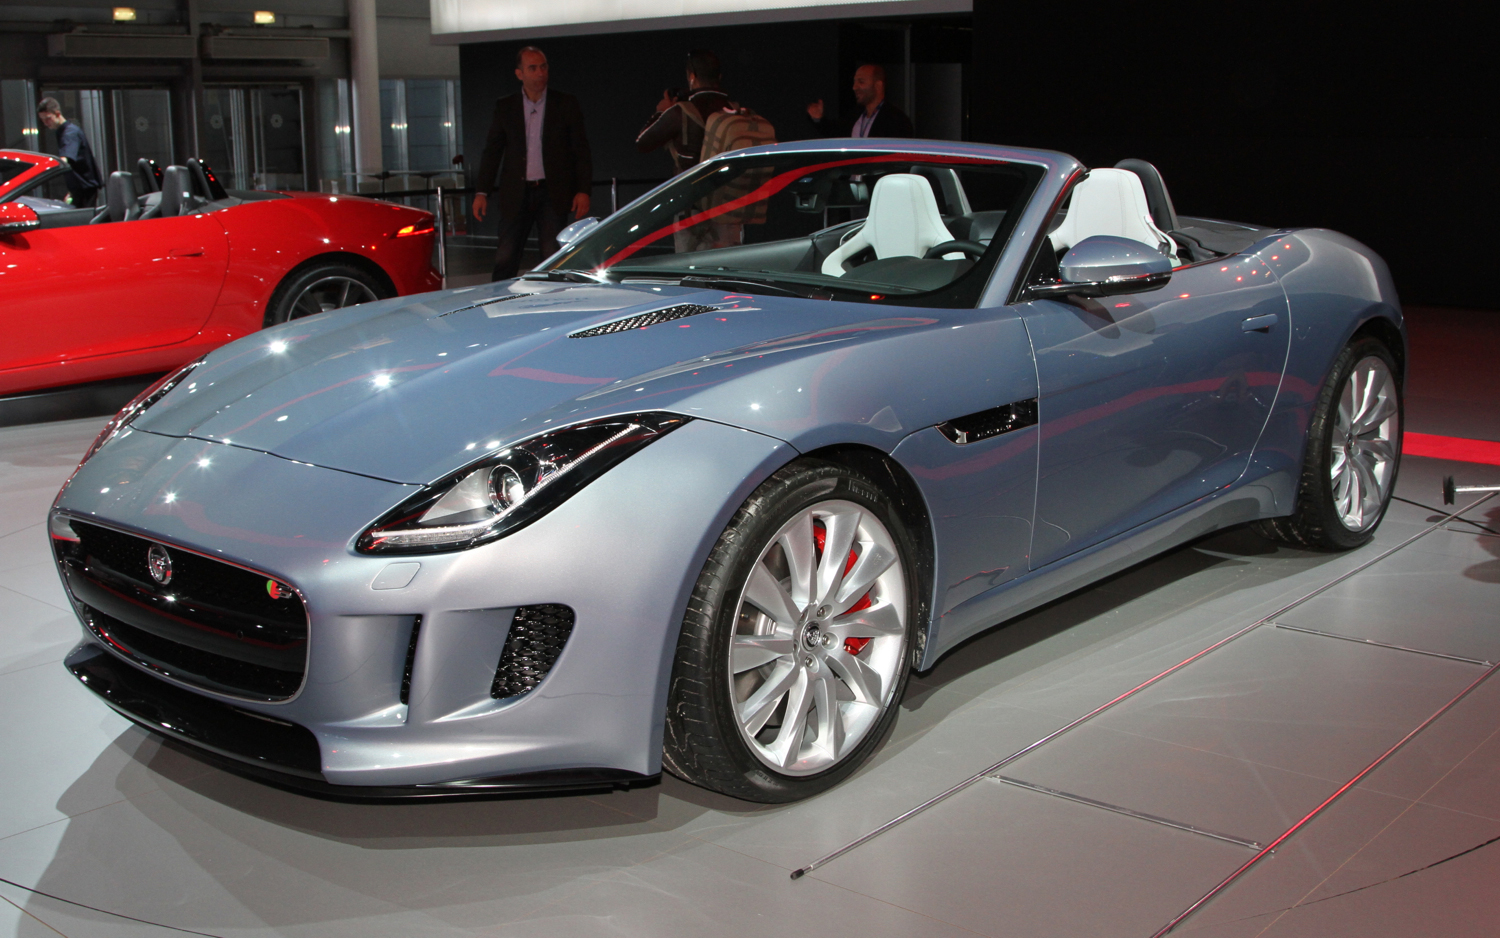 Awesome 2014 Jaguar F Type #10 Jaguar F Type #10